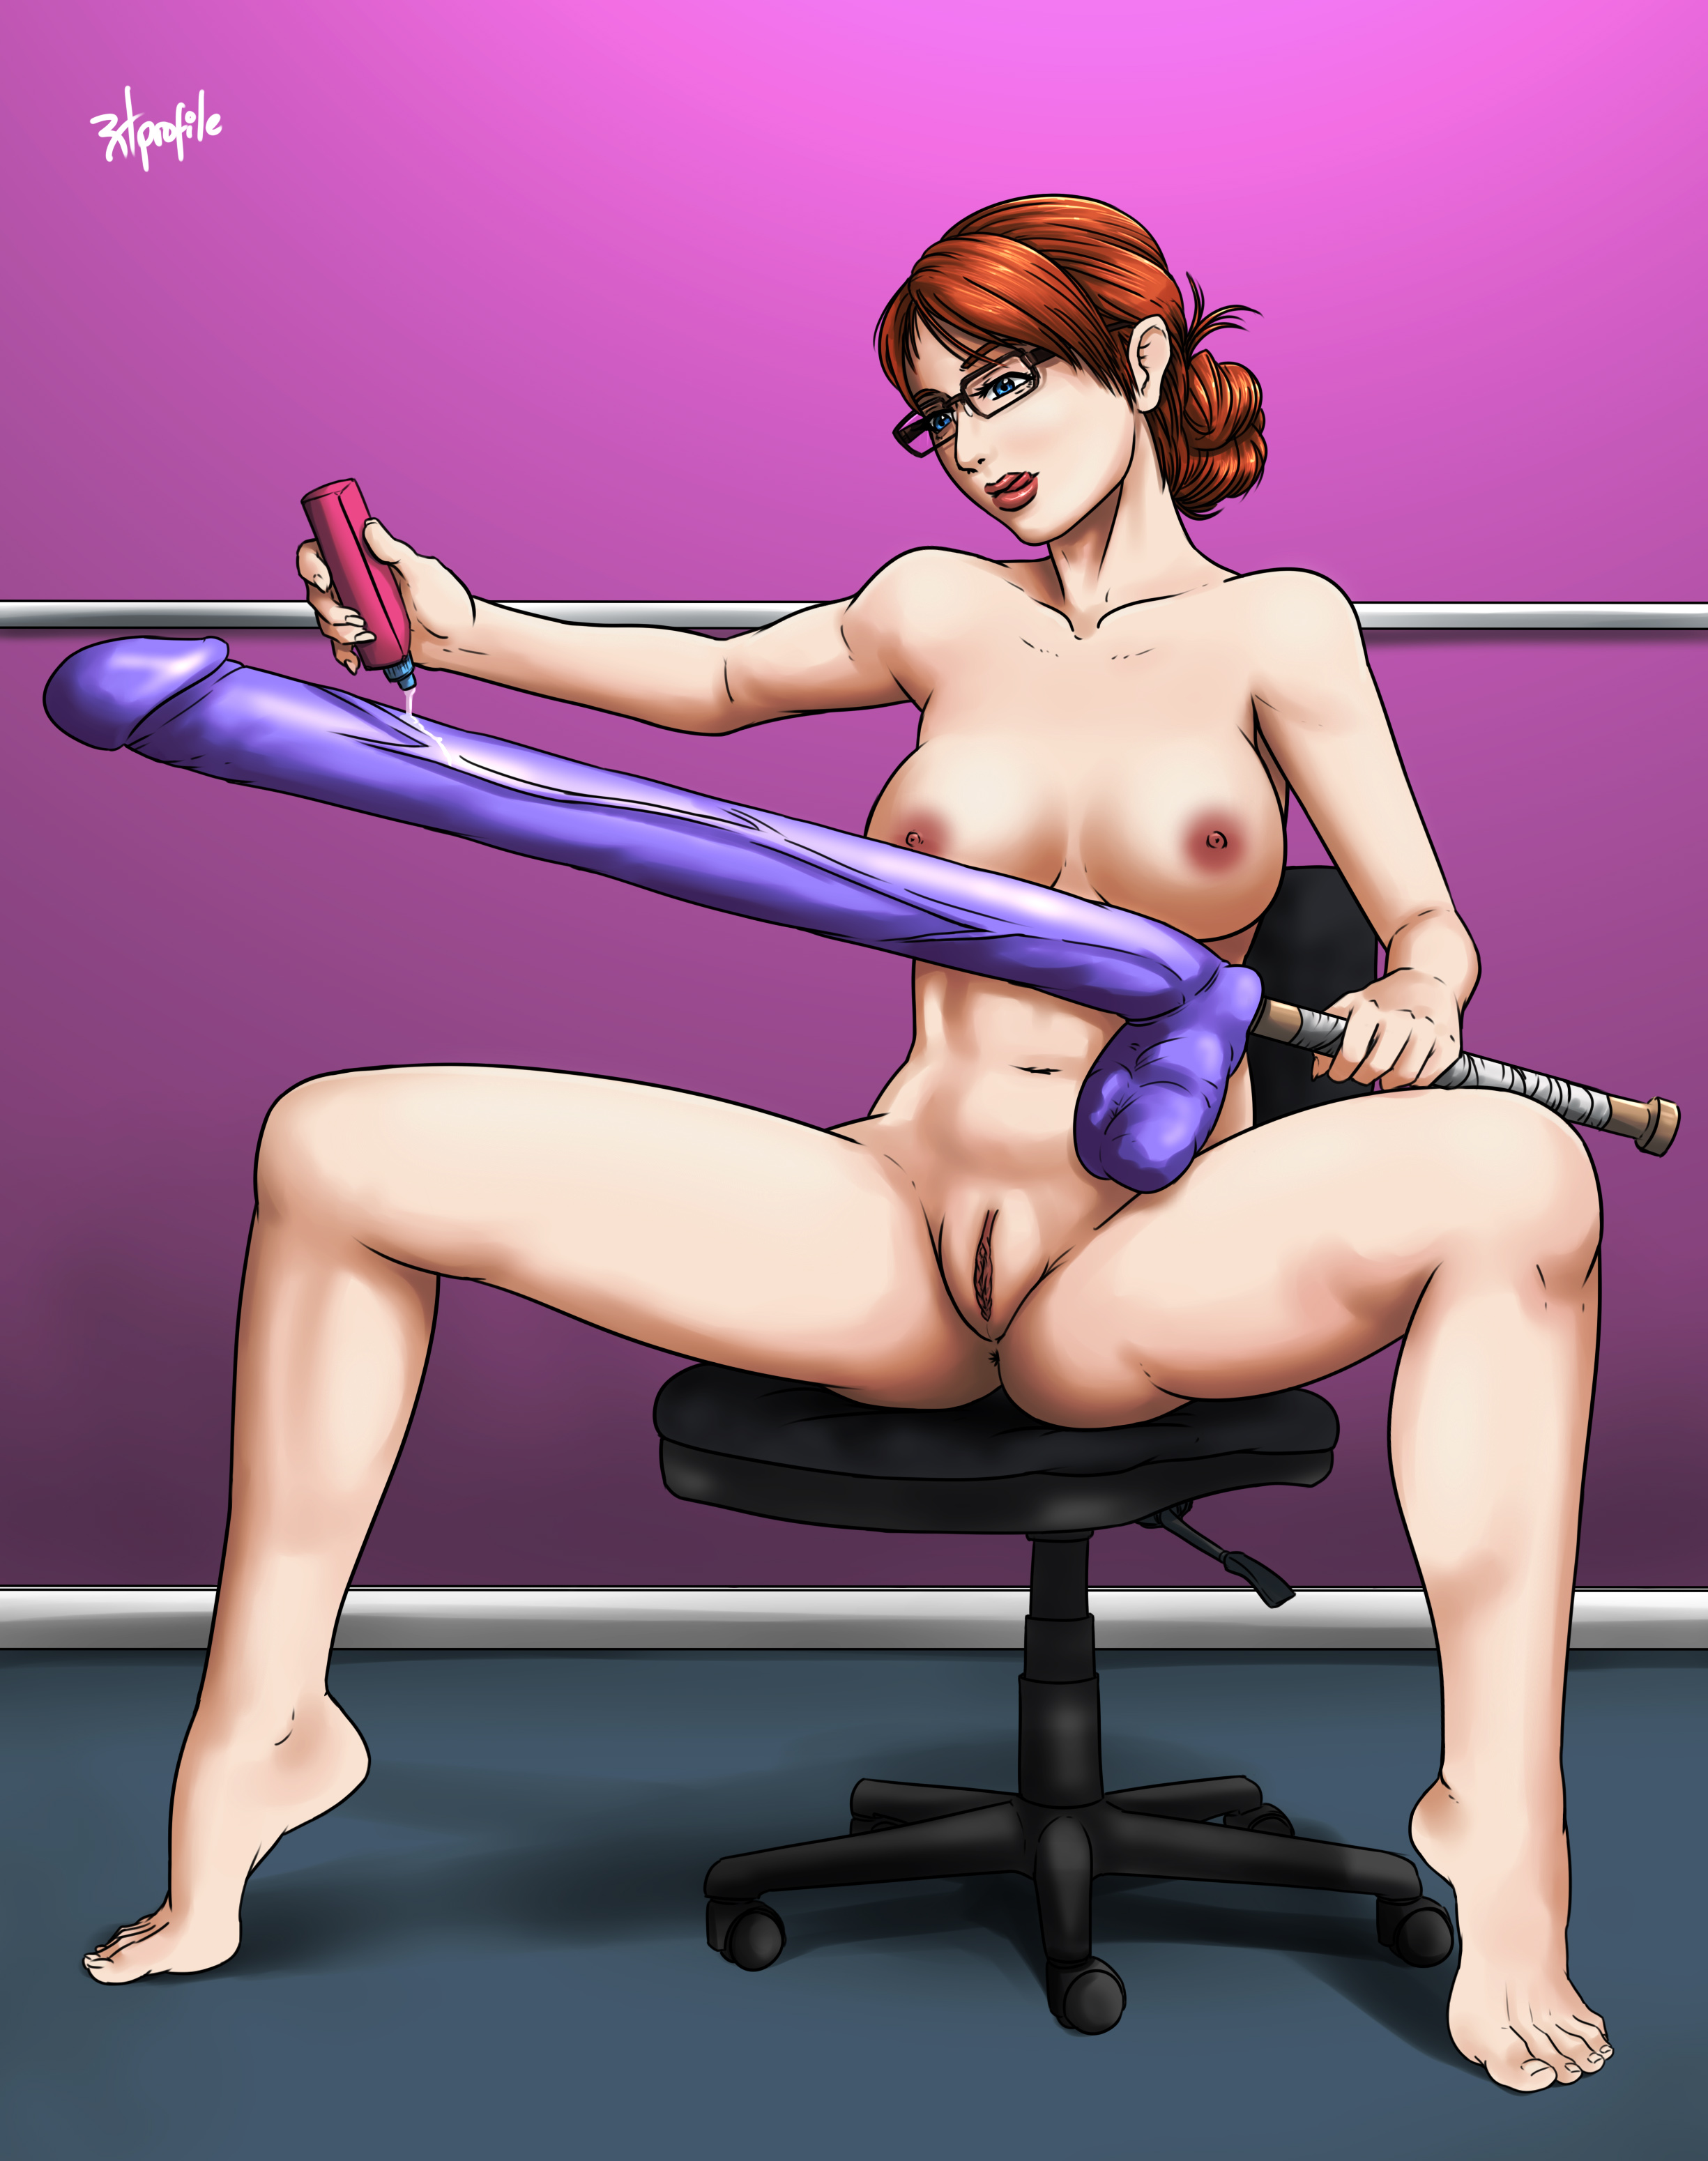 Saints row kinzie porn pornos hairy pussies